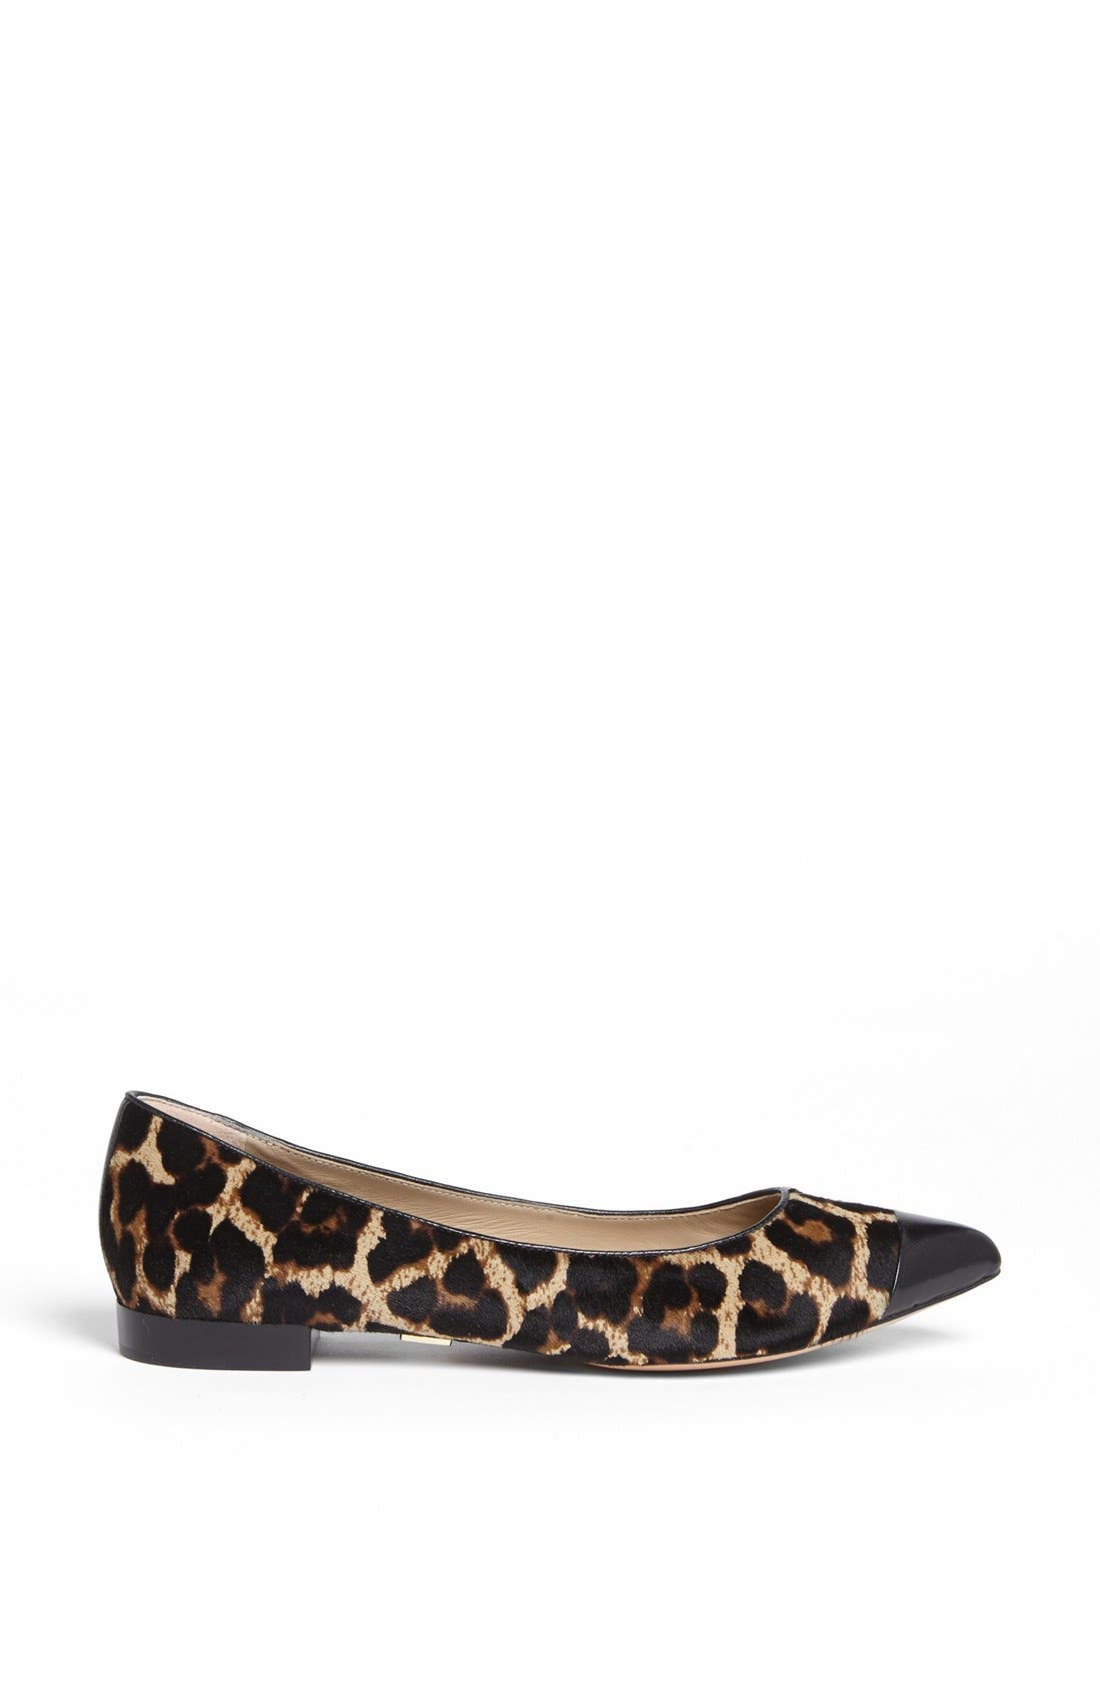 Alternate Image 4  - Michael Kors 'Janae' Calf Hair Flat